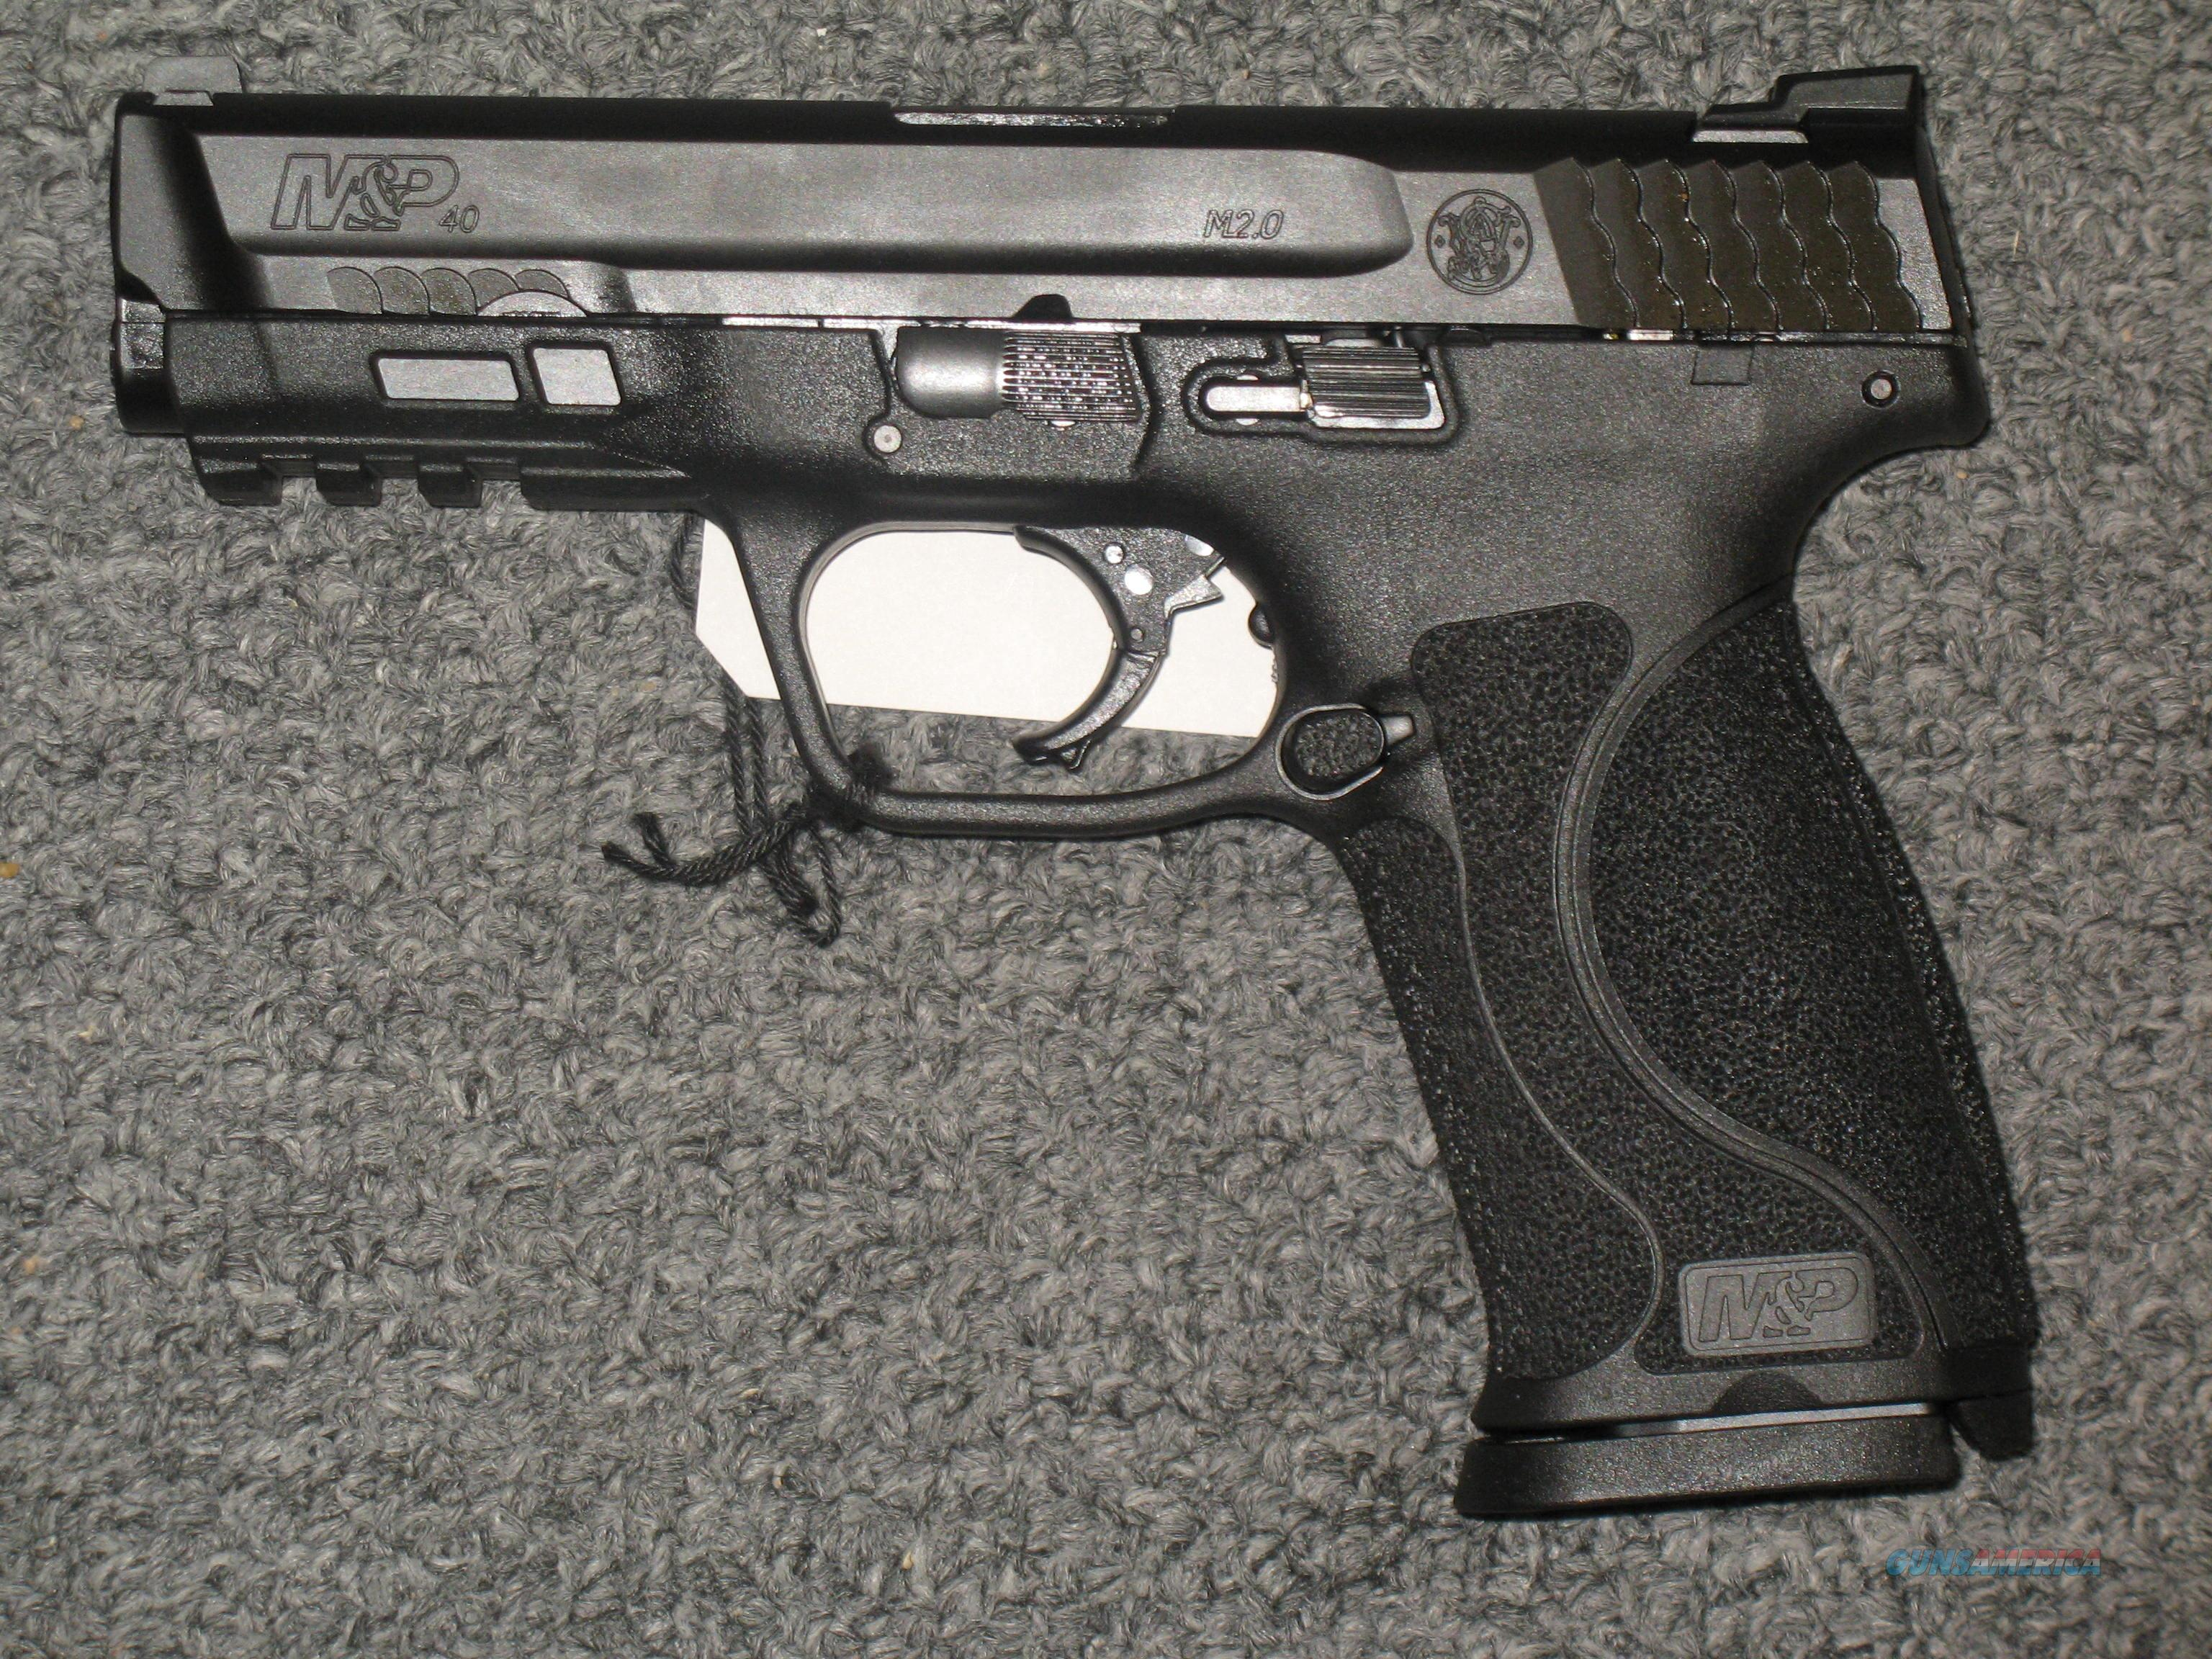 Smith & Wesson M&P40 M2.0 (11522)  Guns > Pistols > Smith & Wesson Pistols - Autos > Polymer Frame